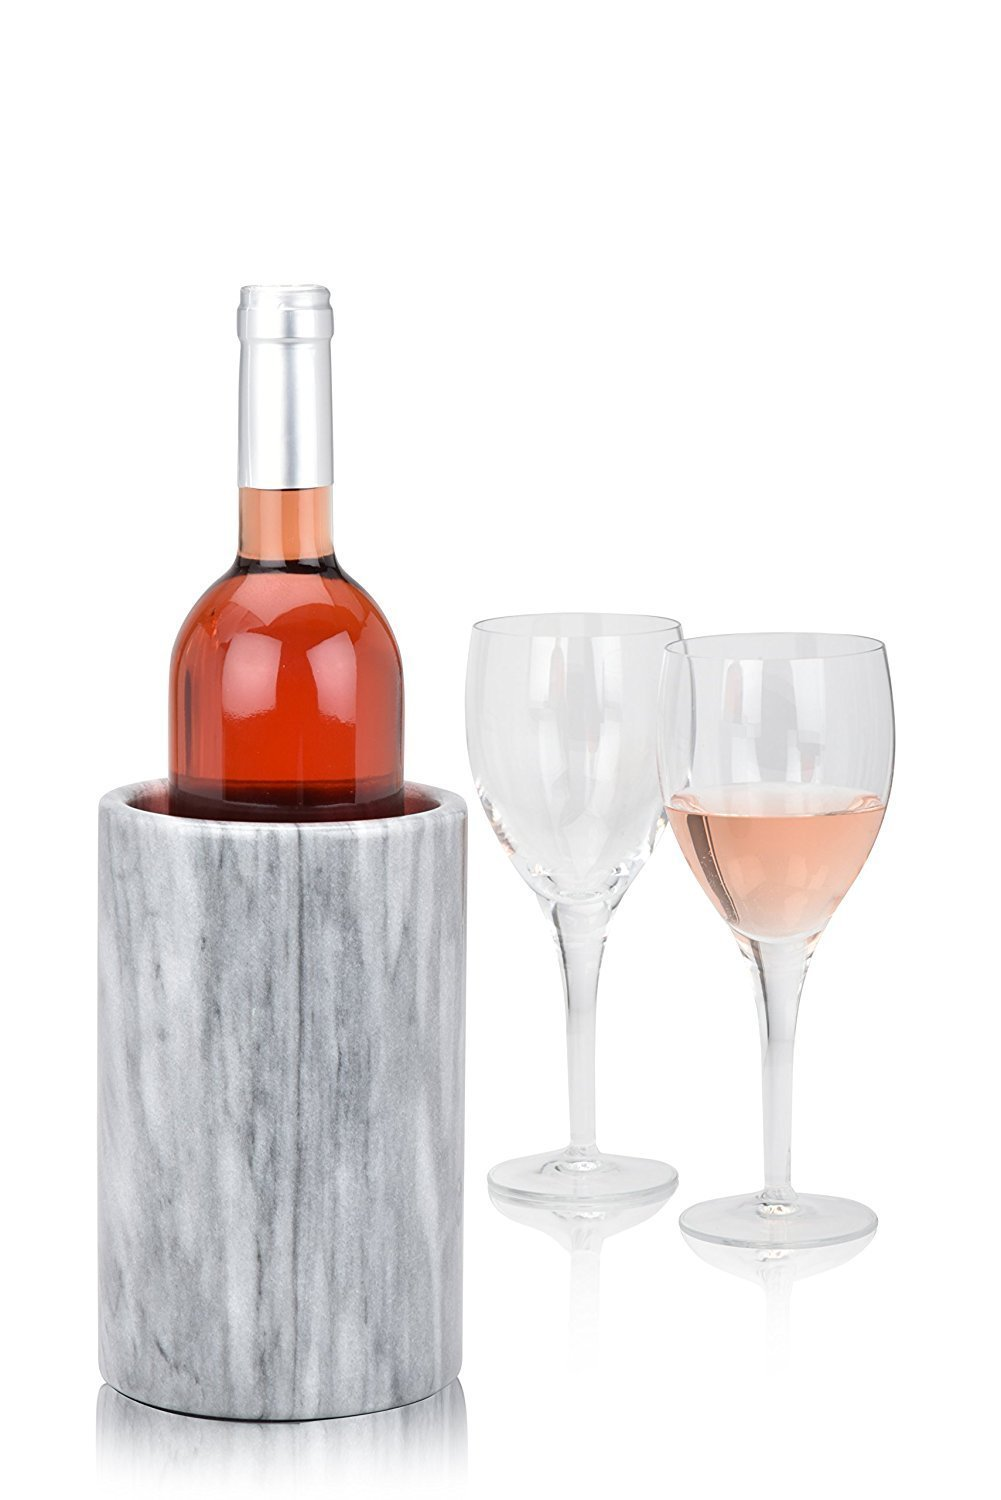 Wine Bottle Cooler Chiller Elegant Marble Grey, Keep Cold Wine and Champagne with Multipurpose Use as Kitchen Utensil Holder and Flower Vase - Modern Innovations